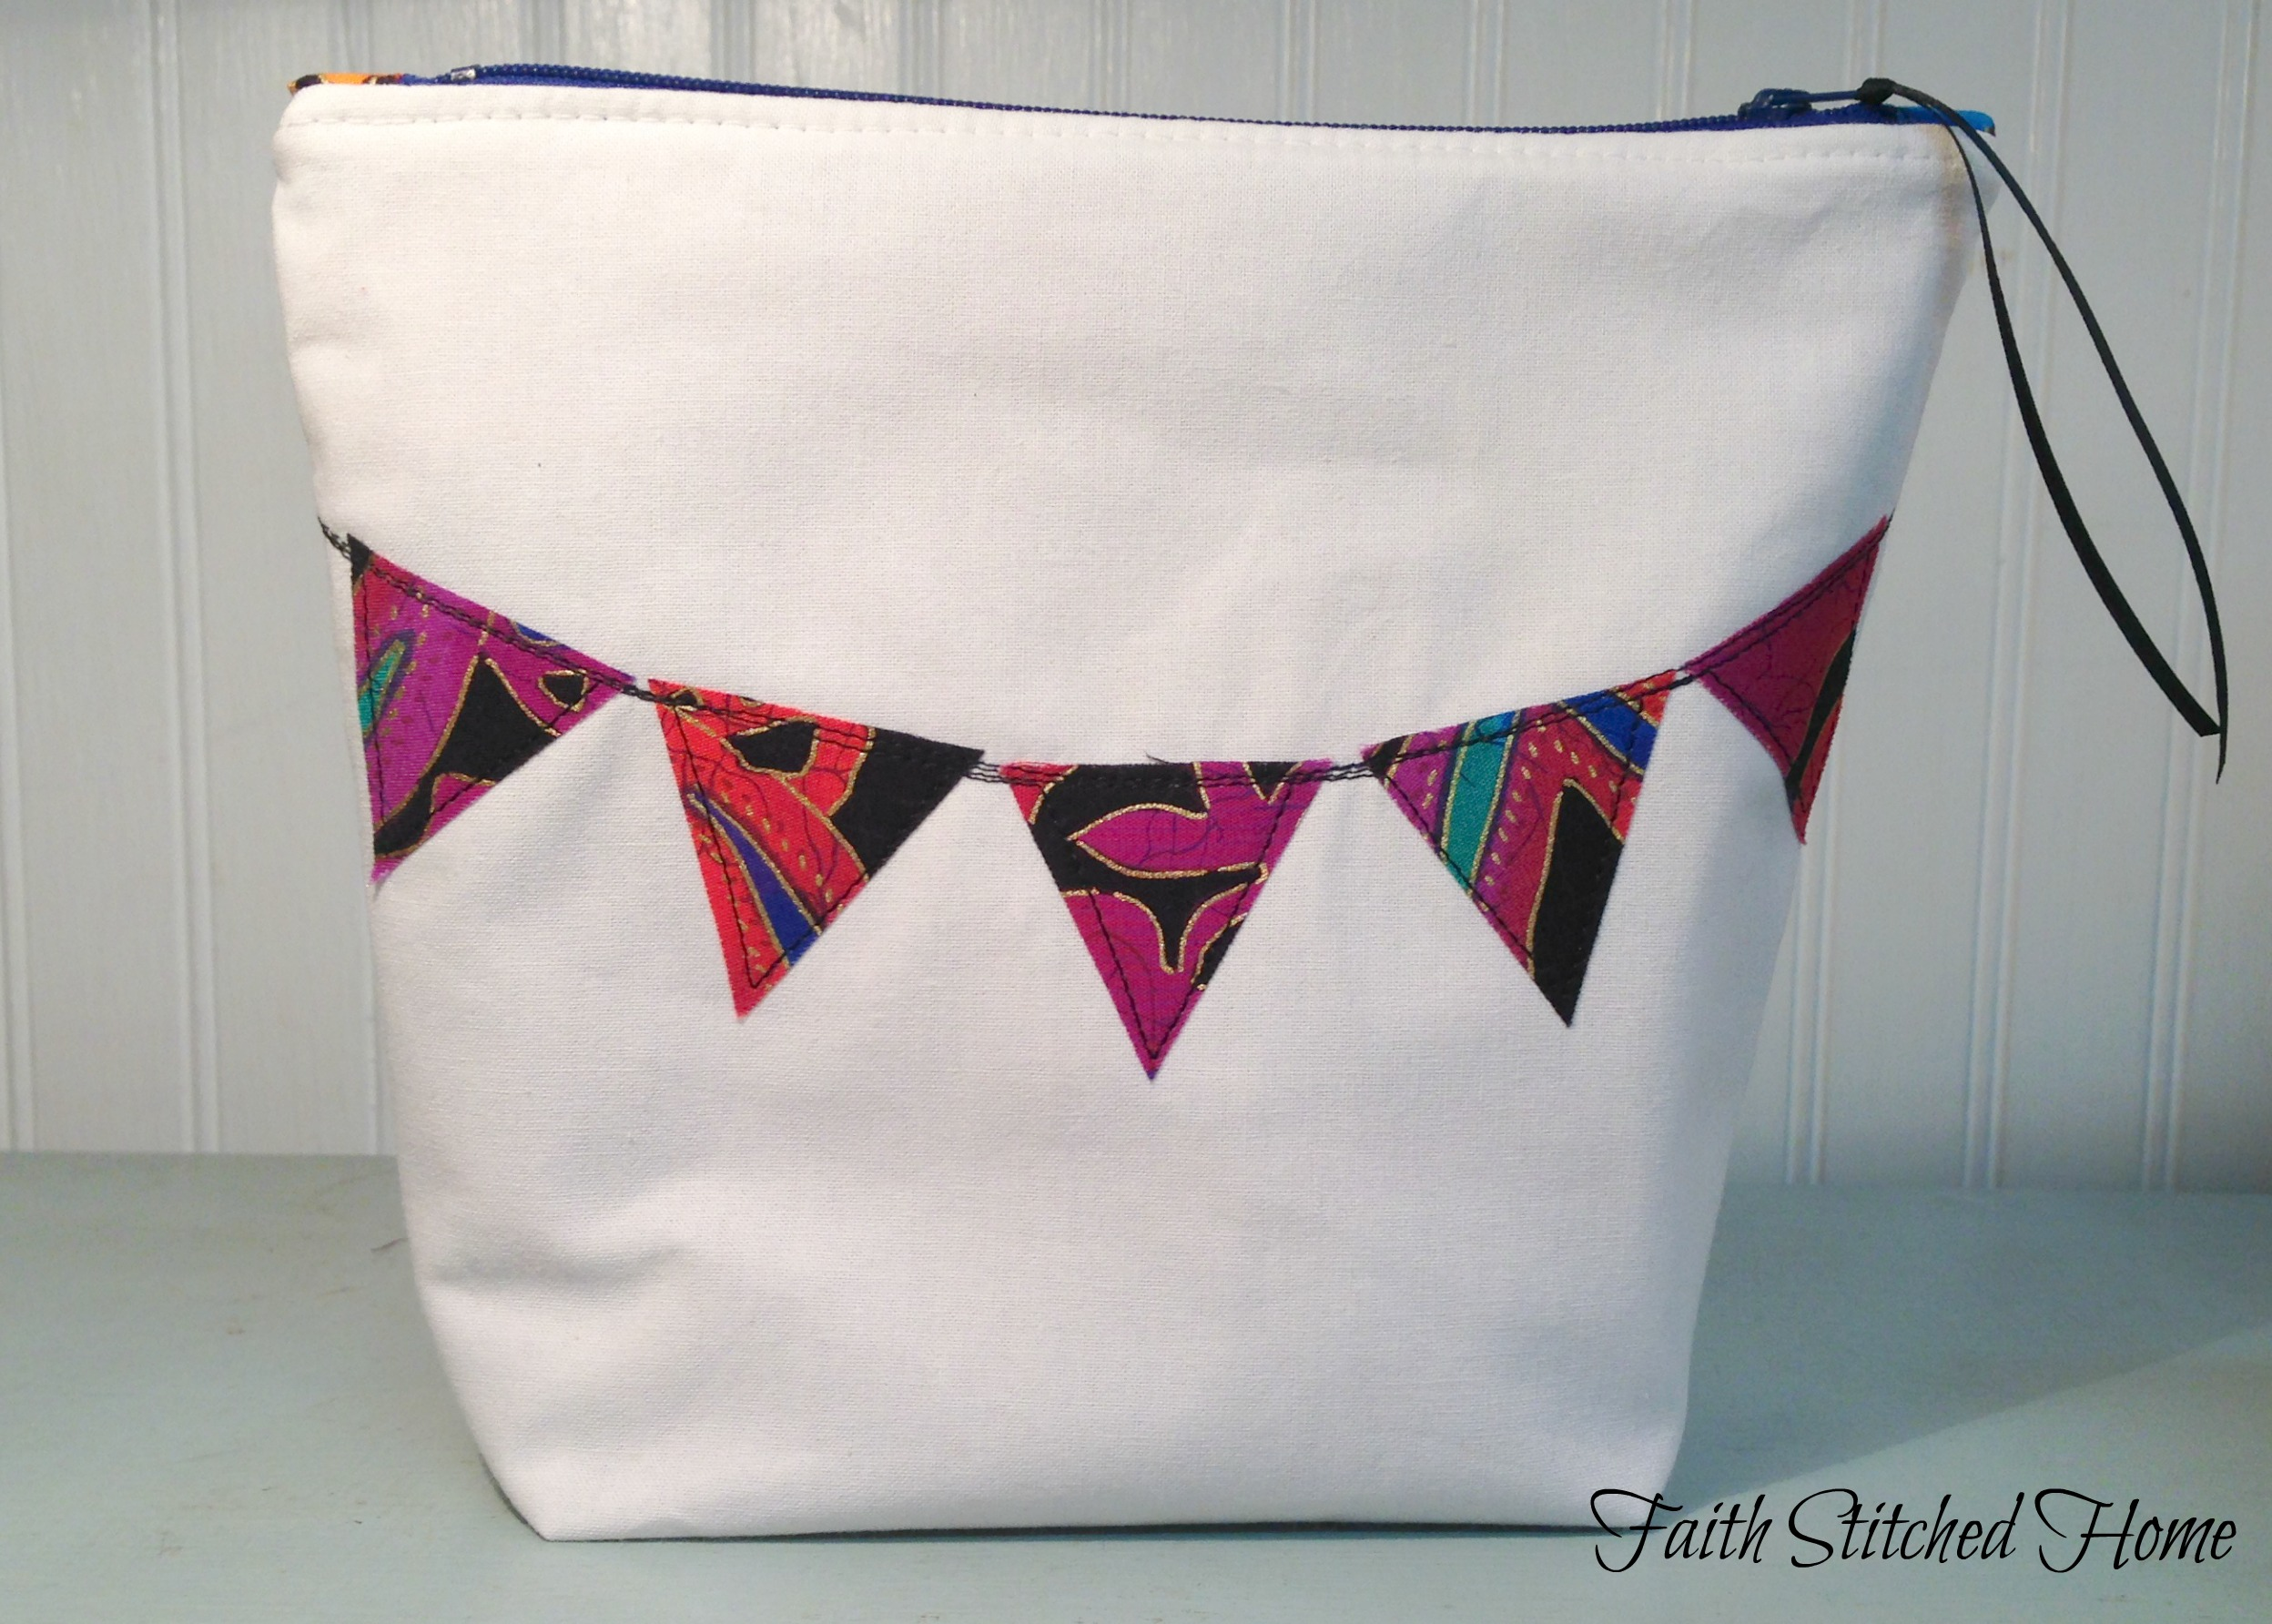 How to make a zipper bag with raw edge applique and boxed corners